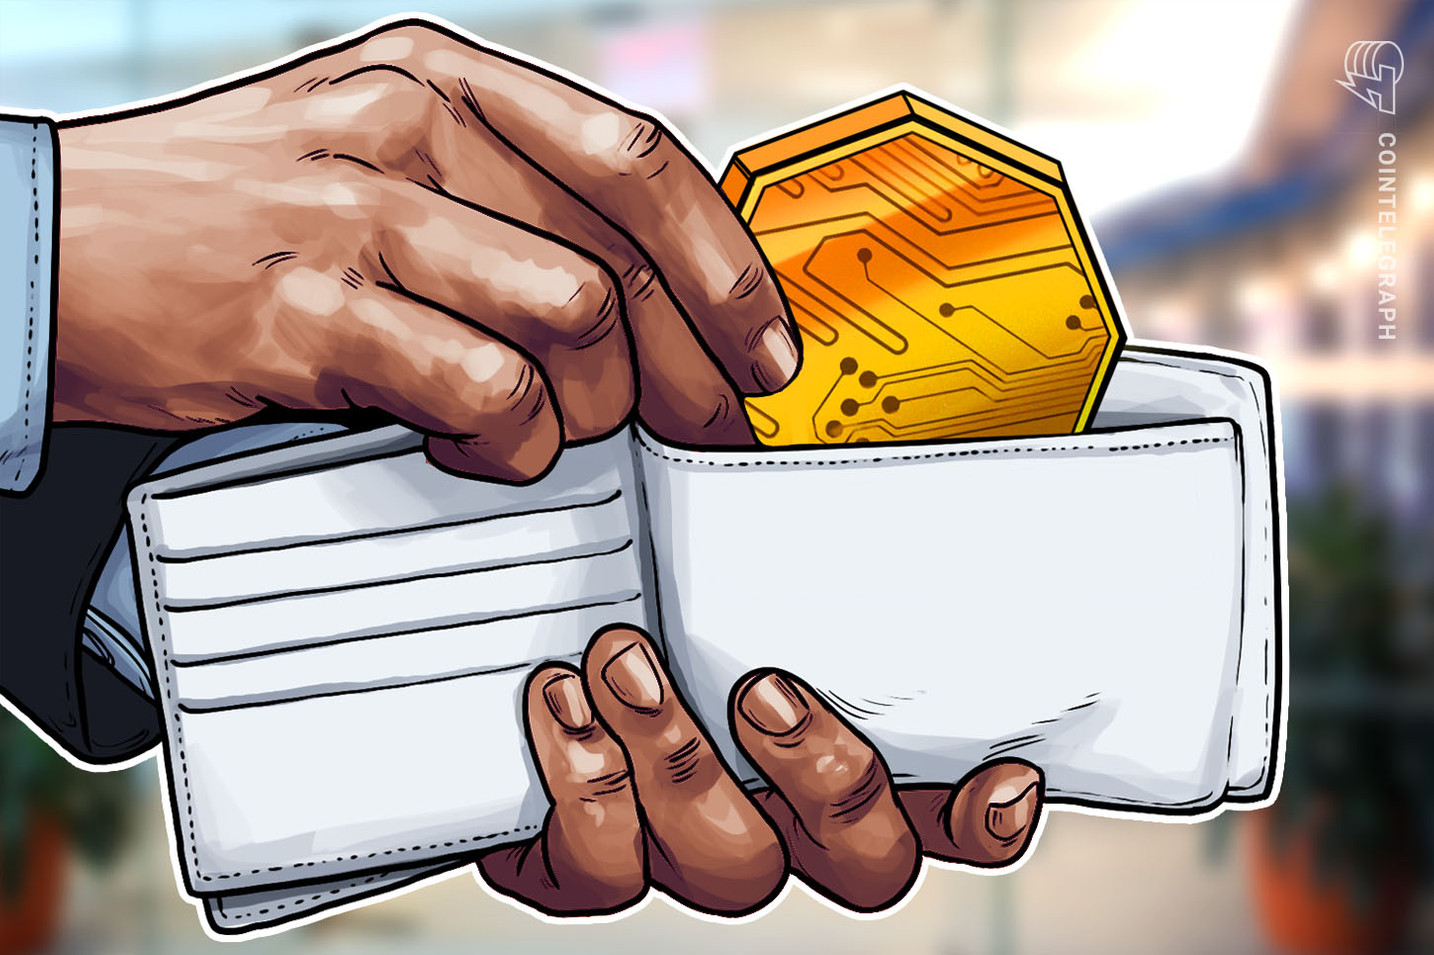 Korean Internet Giant Kakao Teases Its Crypto Wallet for 50M Users